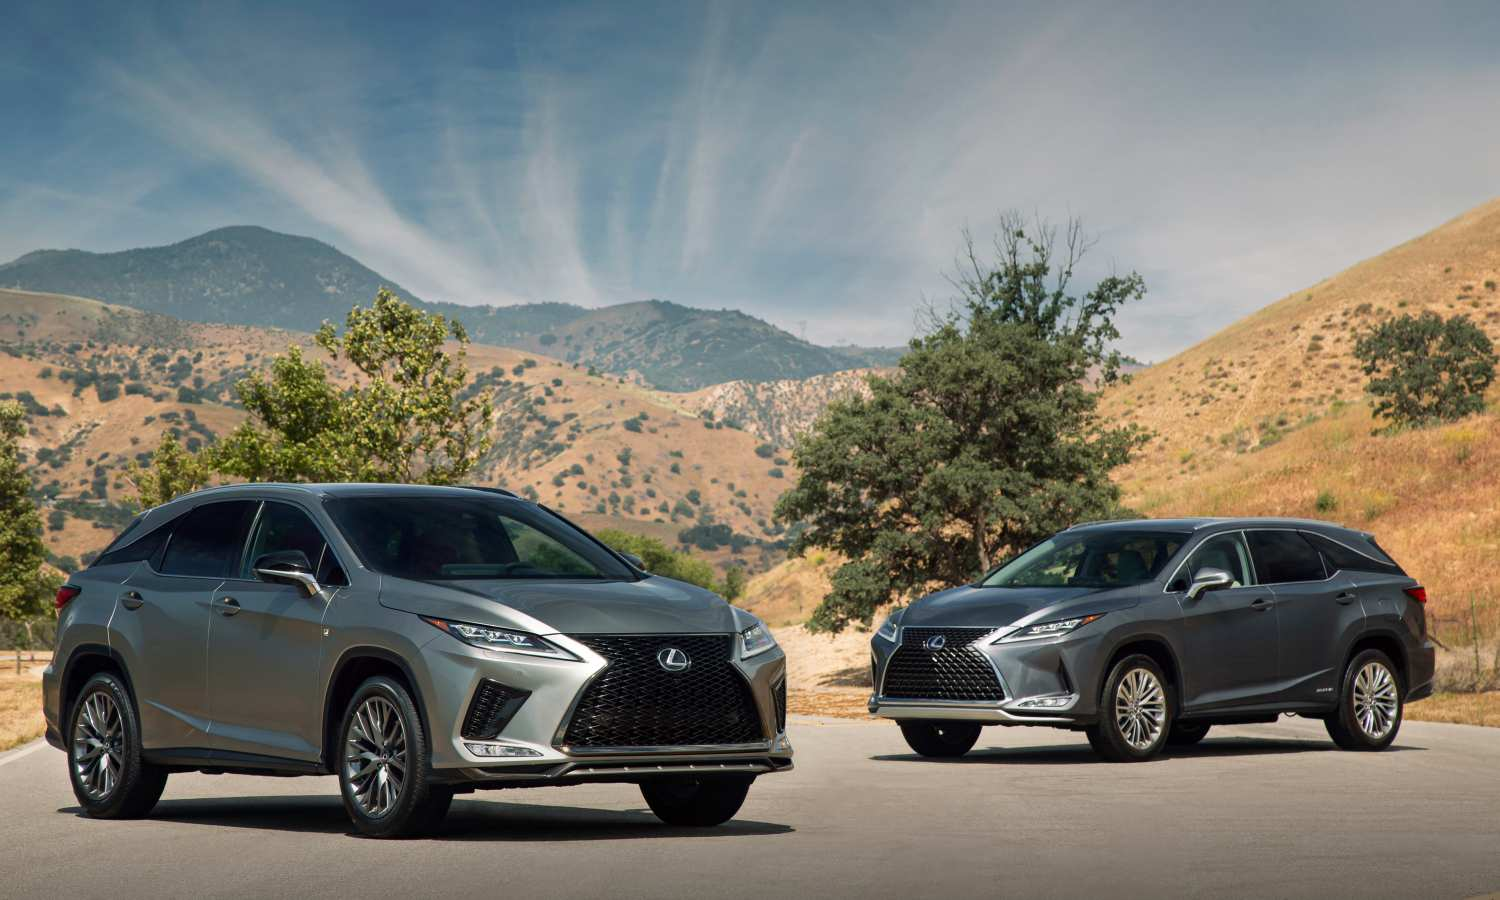 80 The When Will 2020 Lexus Suv Come Out Picture for When Will 2020 Lexus Suv Come Out